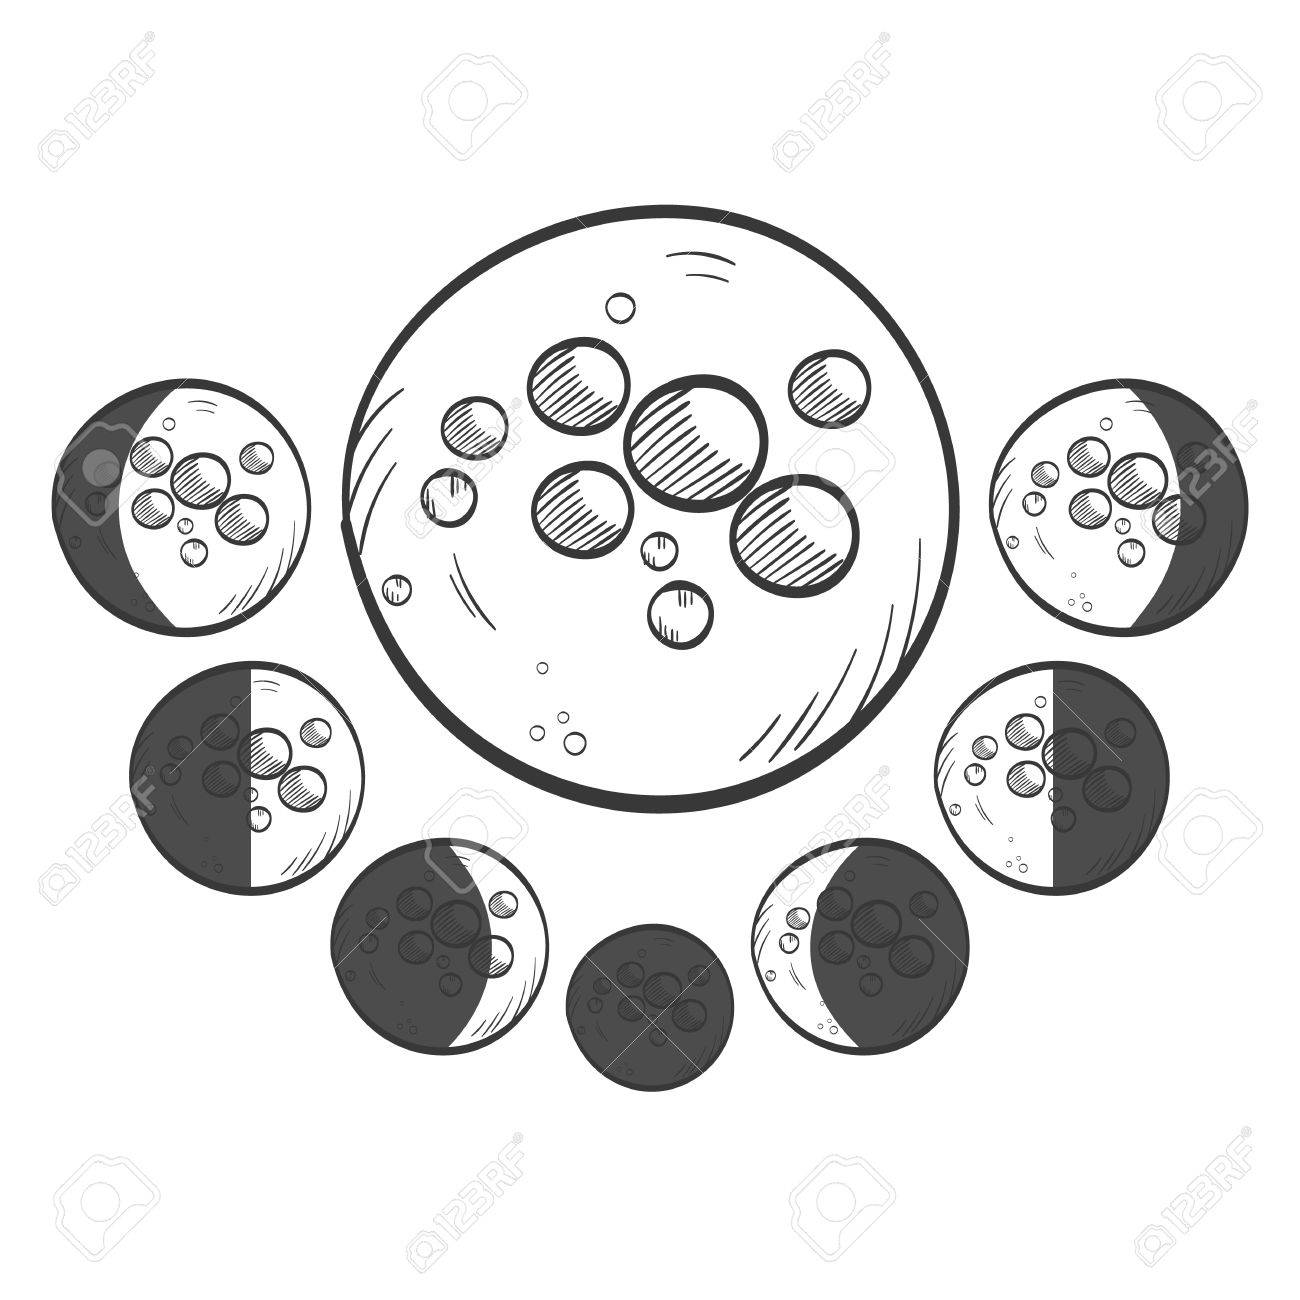 Phases Of The Moon Drawing At Getdrawings